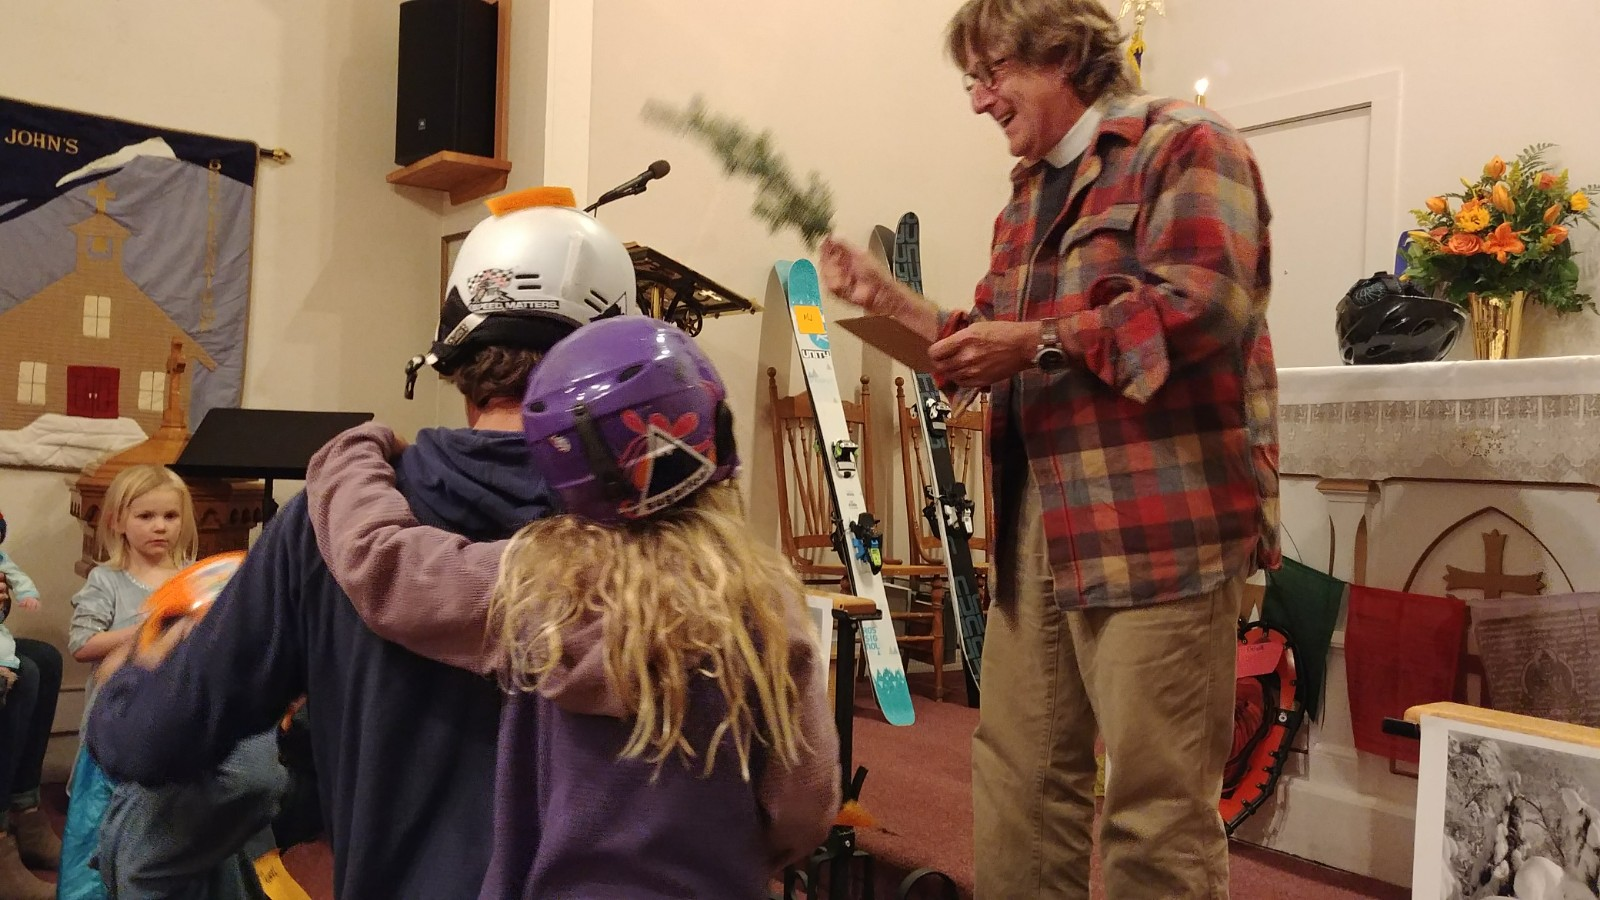 """The Rev. Charlie Brumbaugh leading a """"Blessing of the Skis"""" at St. John's, Breckenridge. Photo courtesy the Rev. Charlie Brumbaugh"""